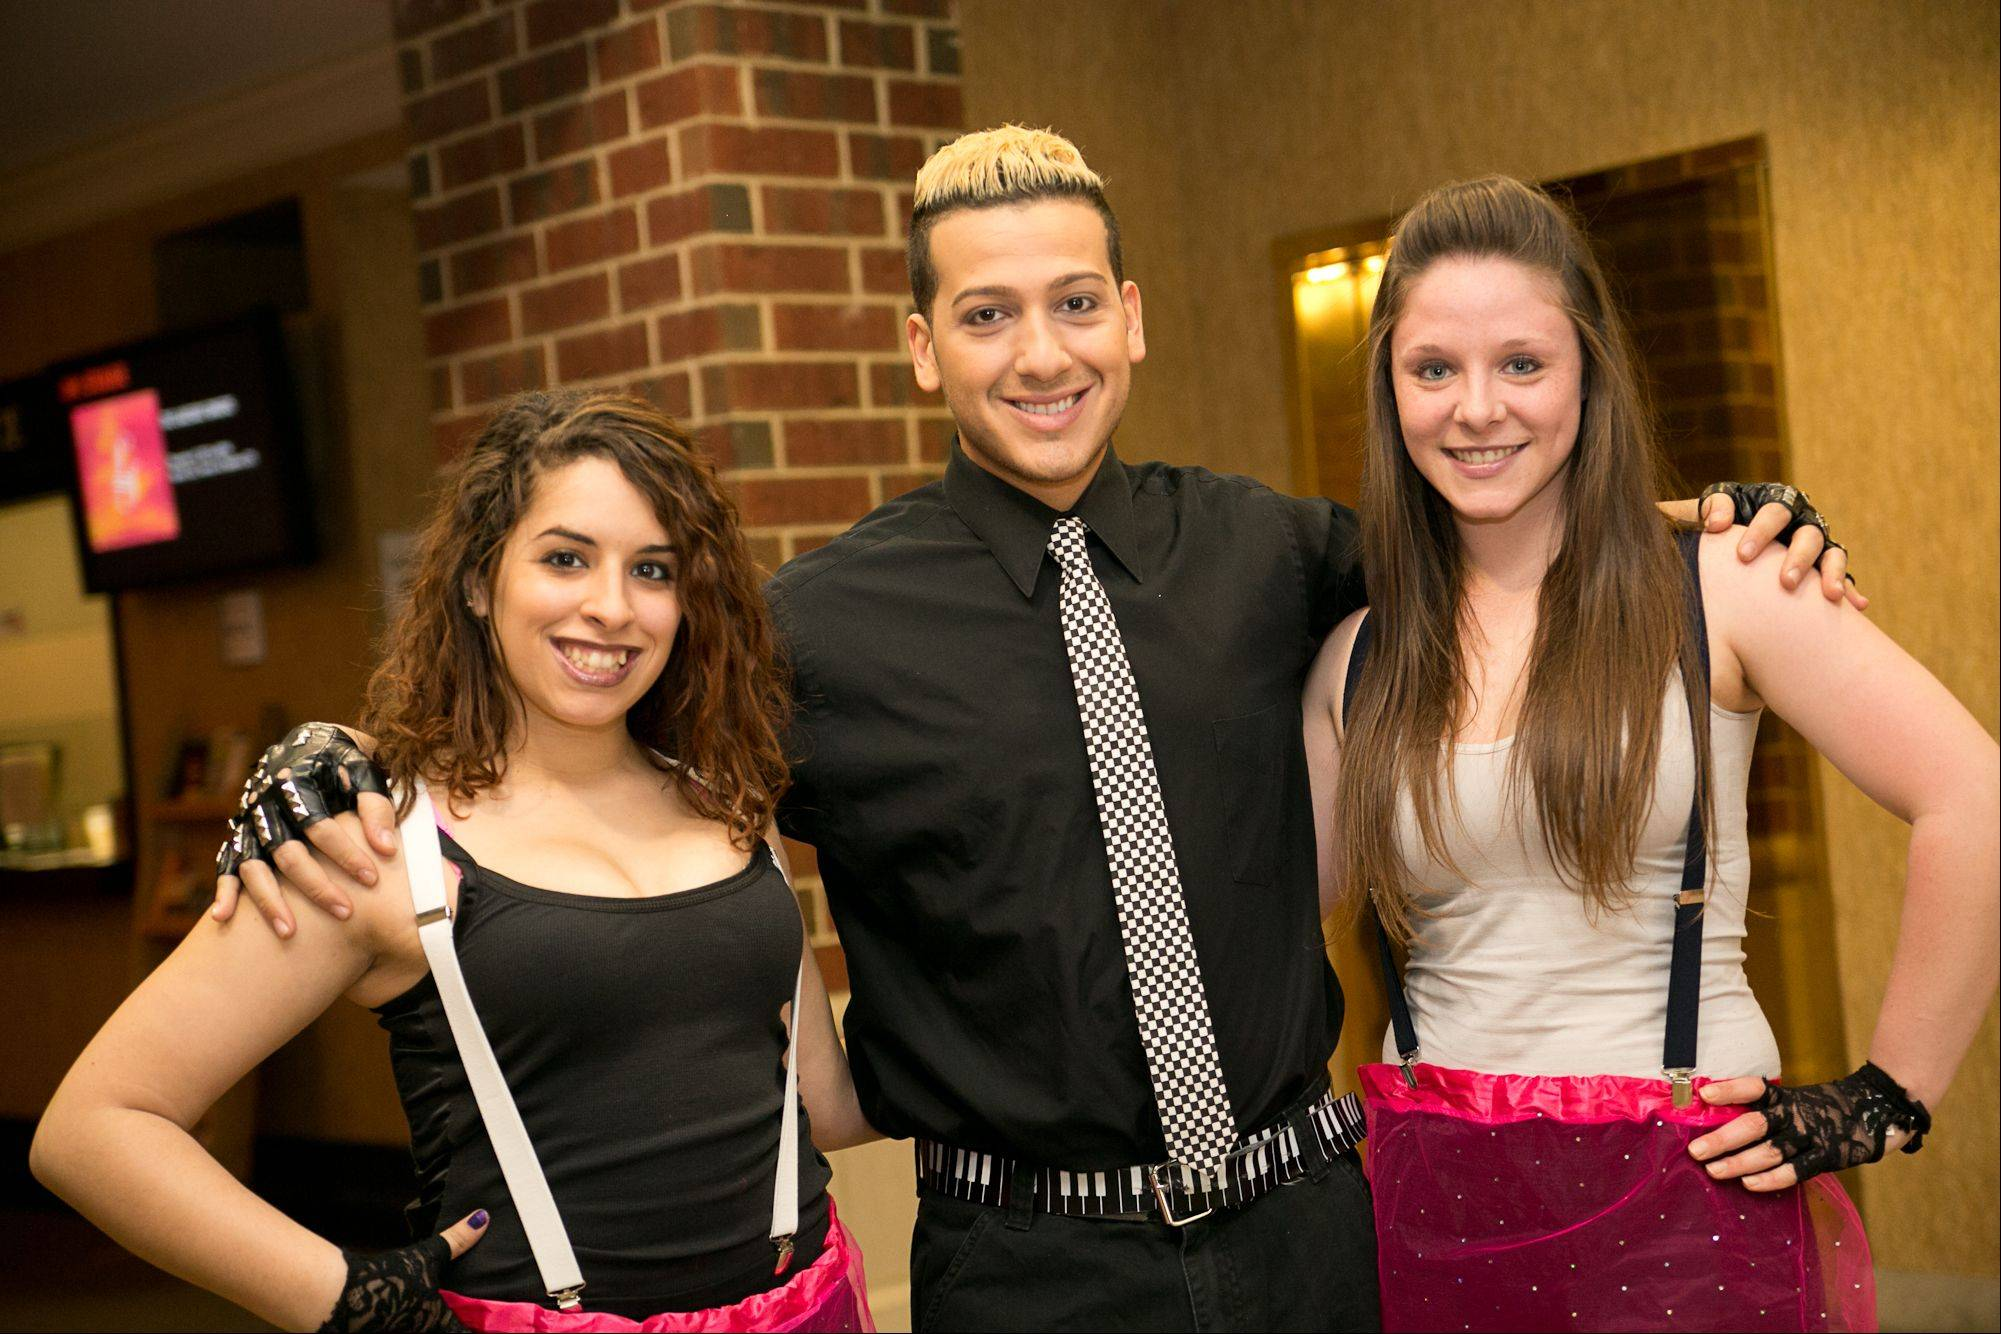 Singer Andre Bellos, center, with back up dancers Alivia Tedeschi and Arielle Atar, all of Des Plaines, is one of the Top 30 finalists in Suburban Chicago's Got Talent.